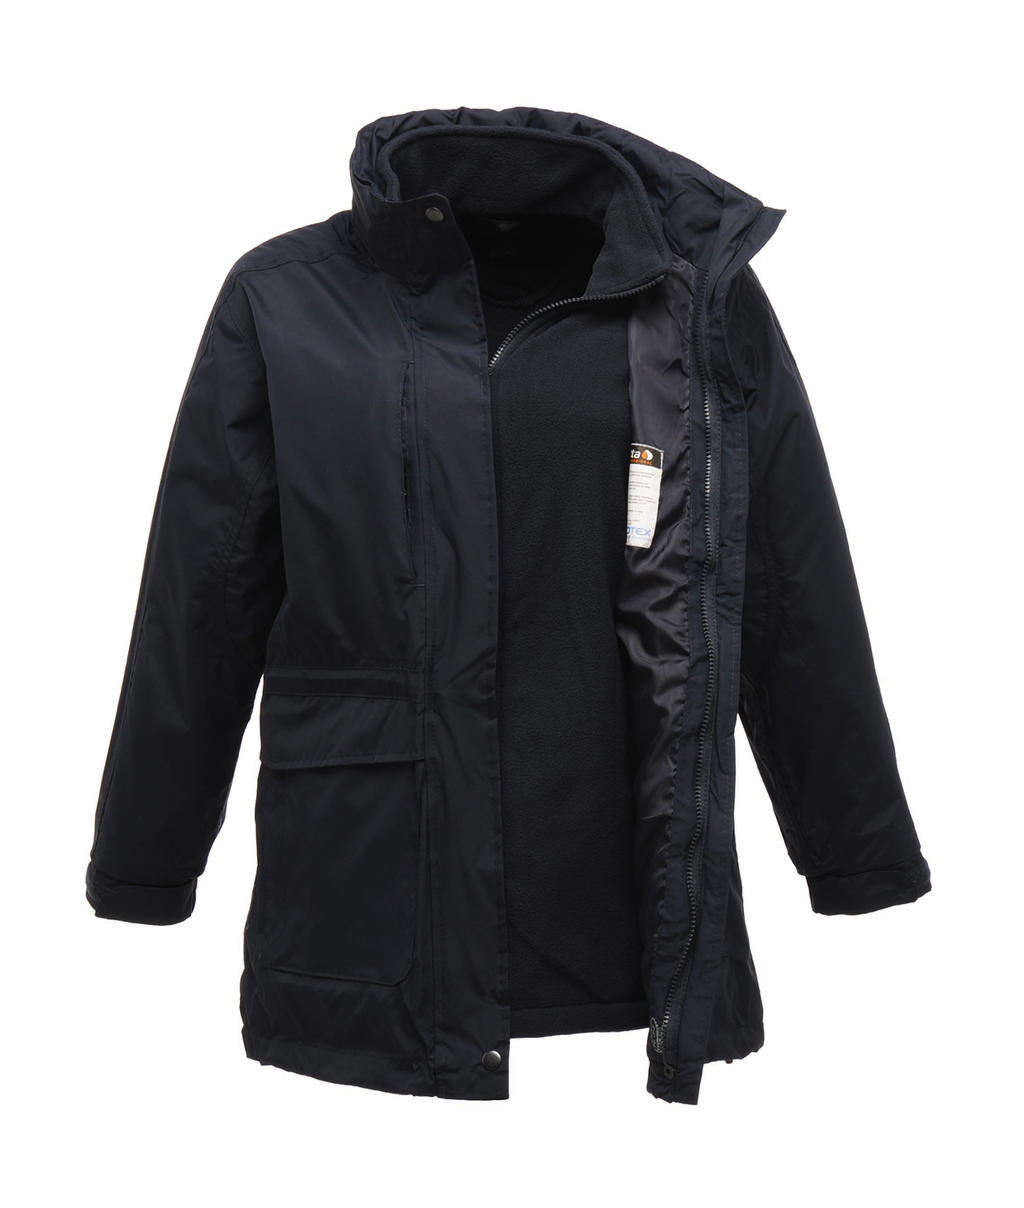 Regatta Ladies Benson II 3-in-1 Jacket